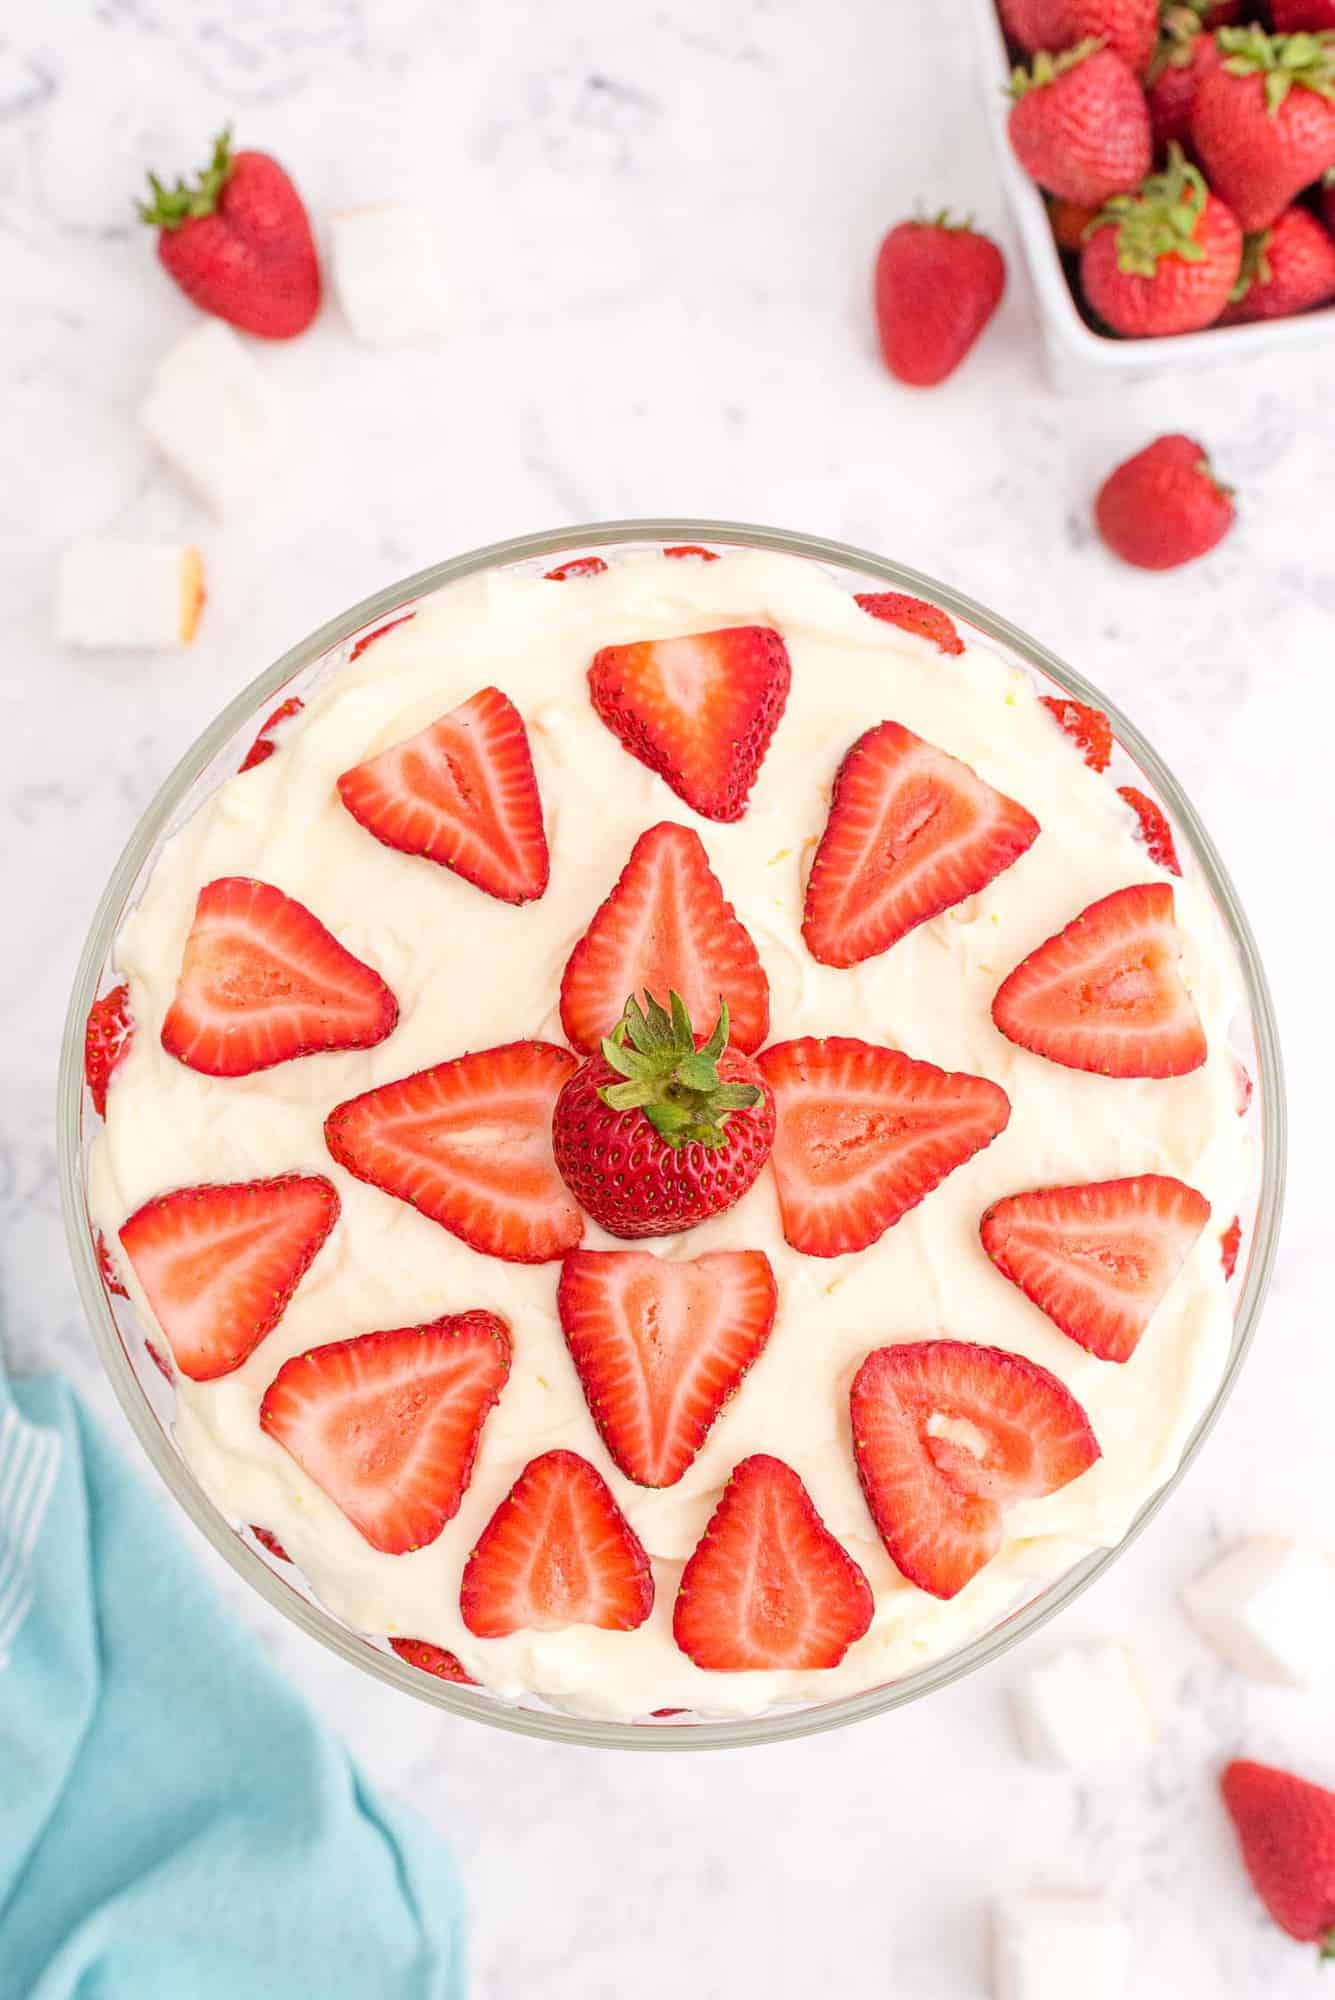 Strawberry dessert viewed from above, topped decoratively with slices of strawberries.